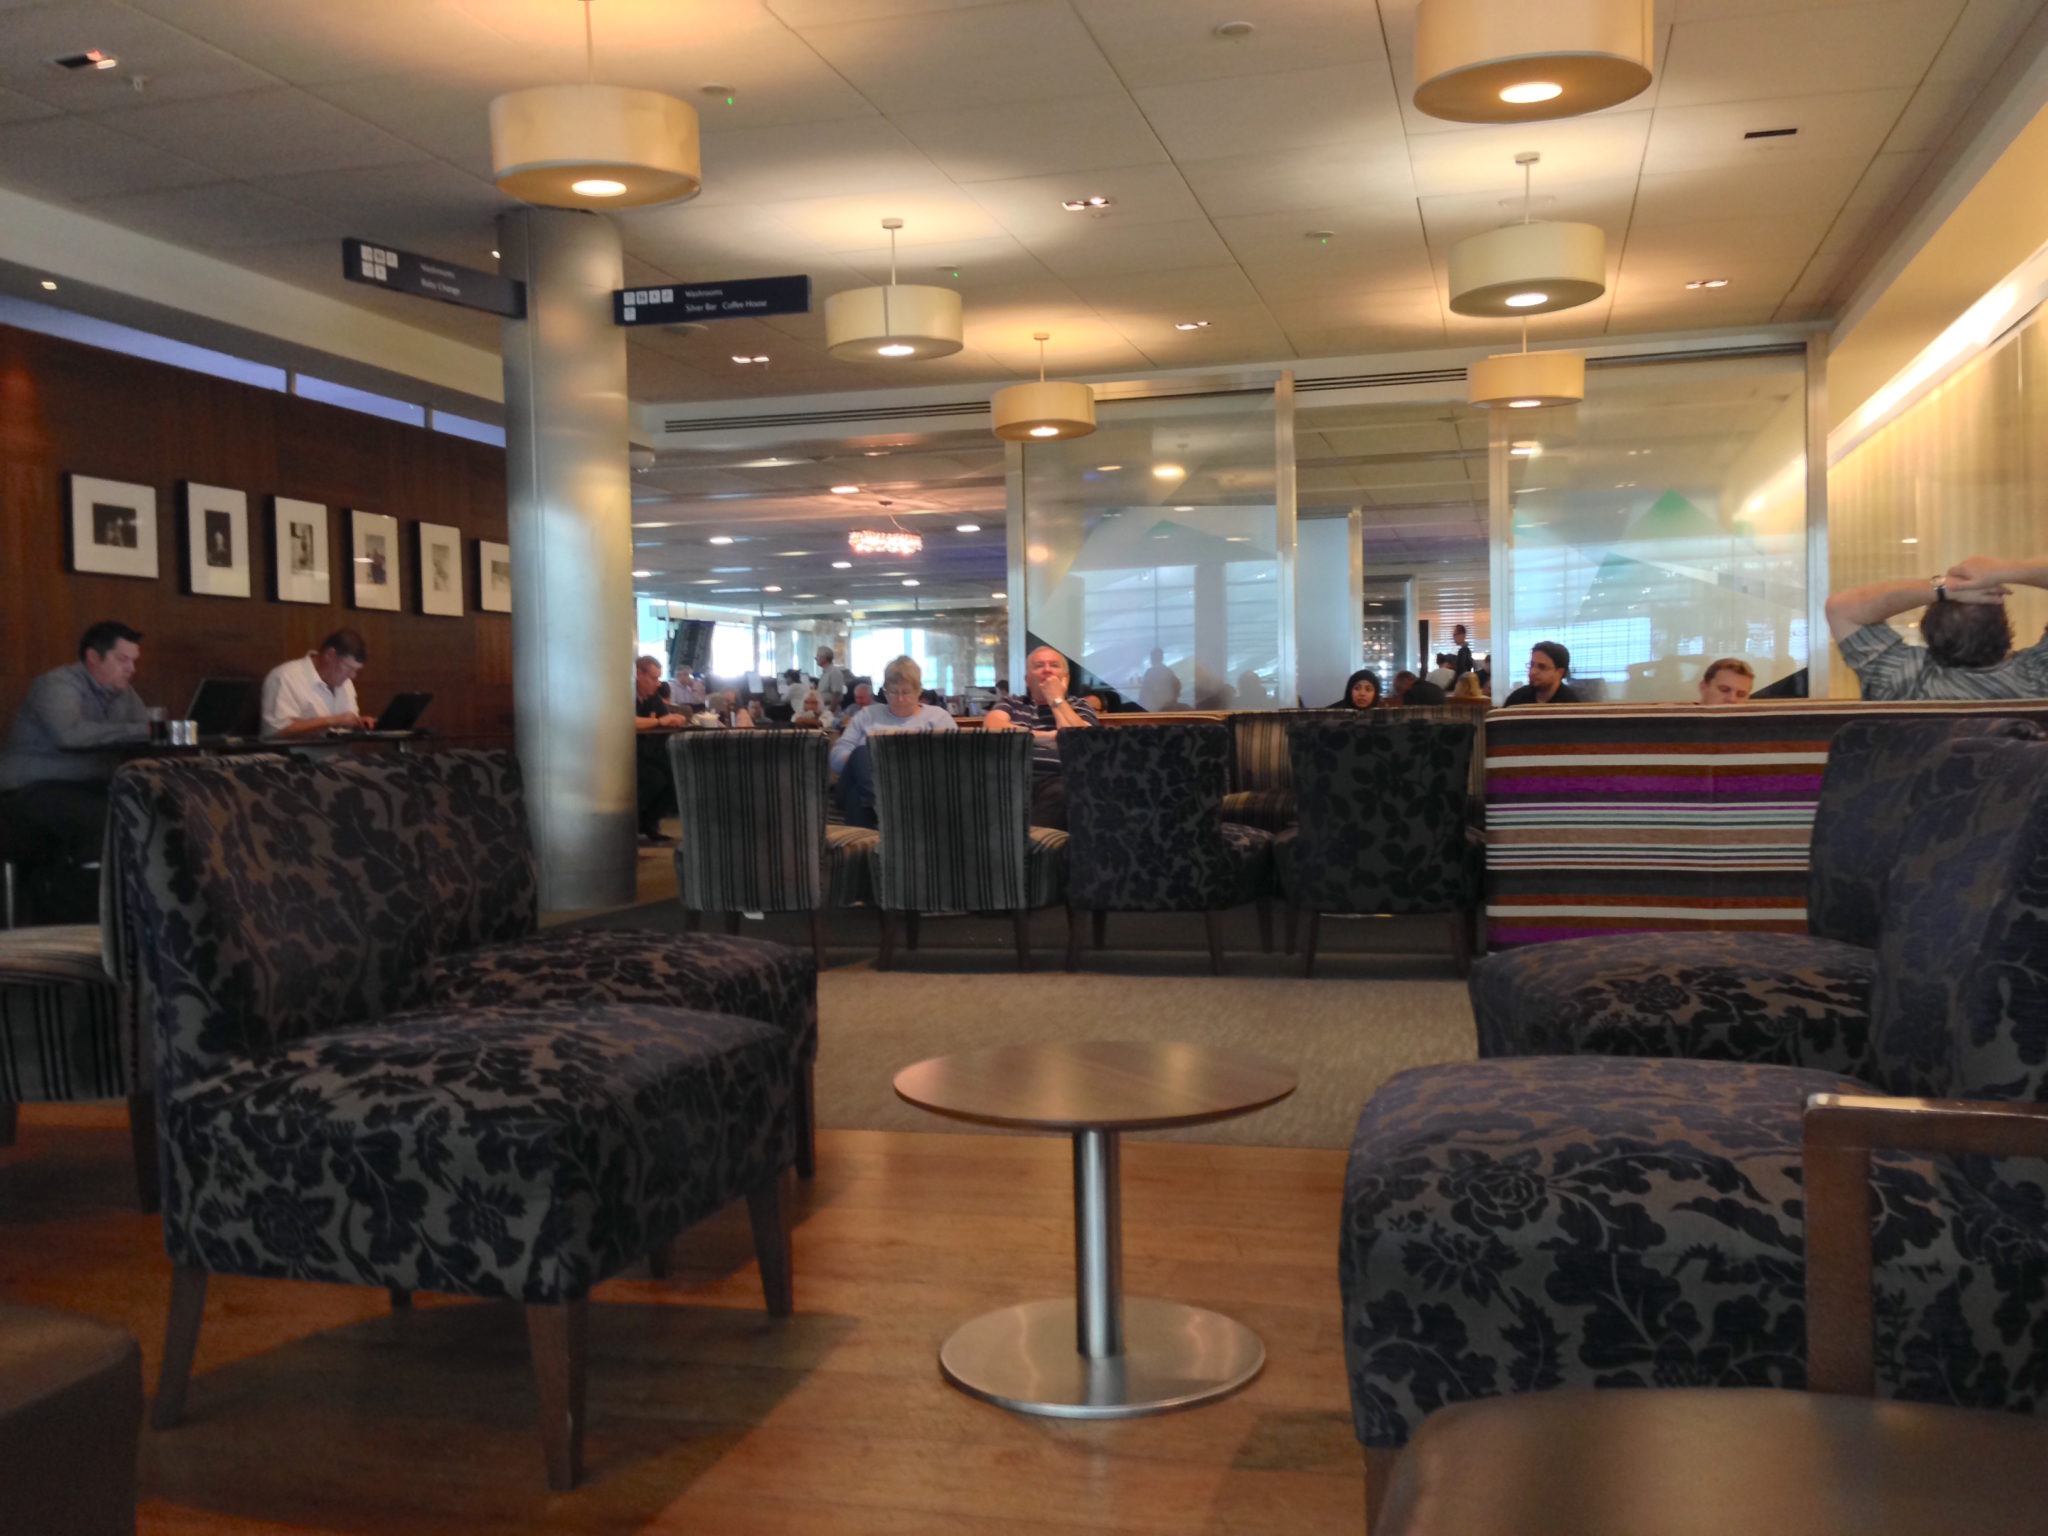 BA's Galleries Club feel like school common rooms — rather battered furniture, a bit dim, and quite noisy